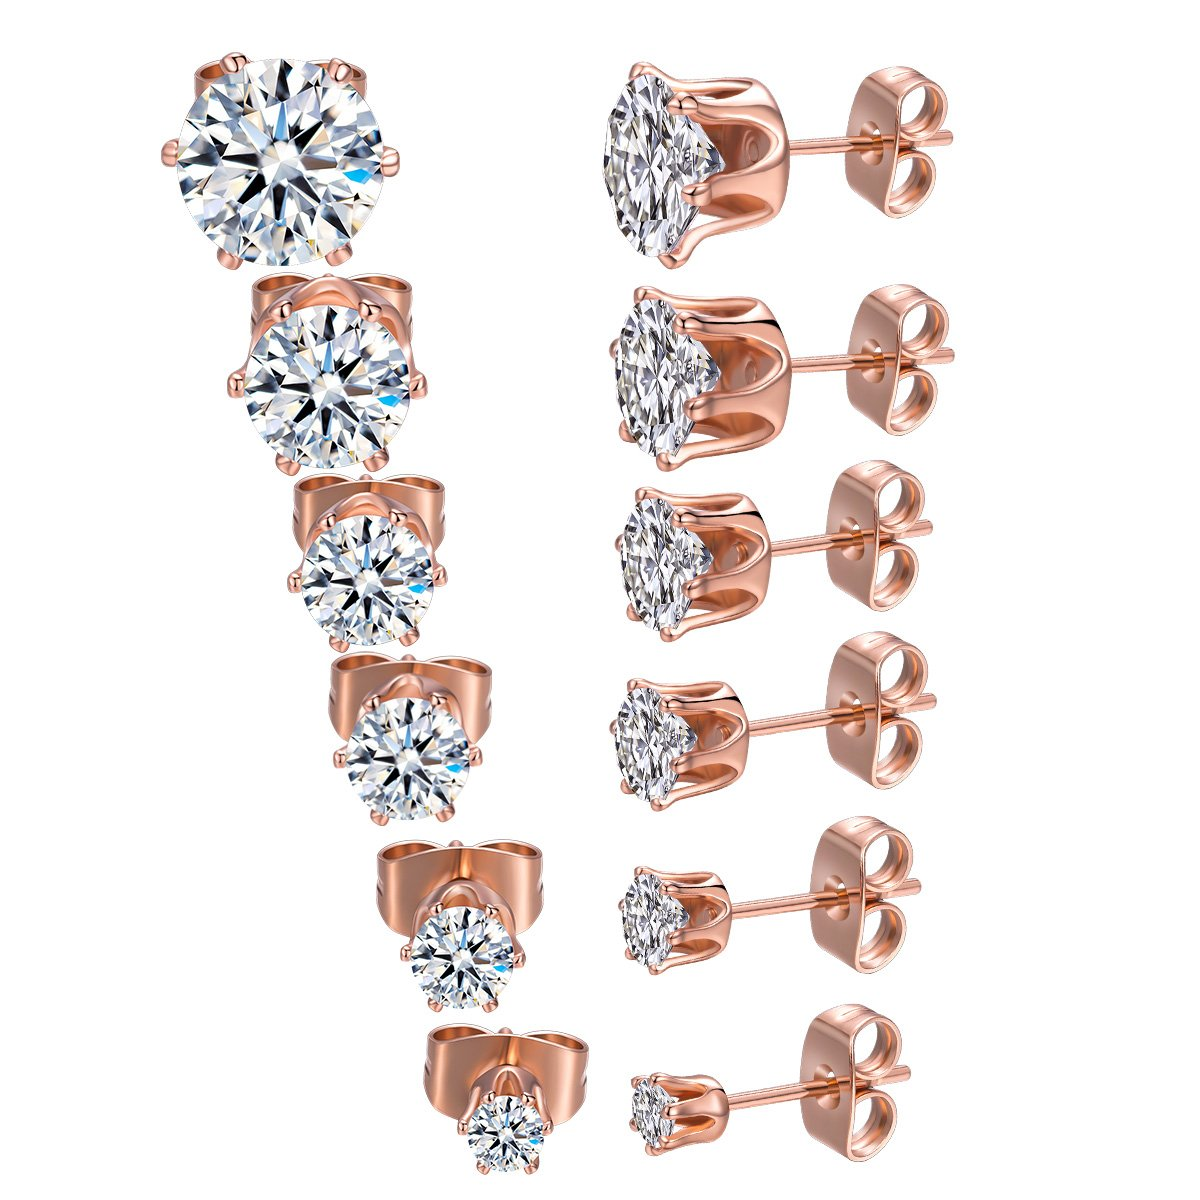 MDFUN 18K Rose Gold Plated Round Clear Cubic Zirconia Stud Earring Pack of 6 Pairs (6 Pairs) B07BGVZSPF_US